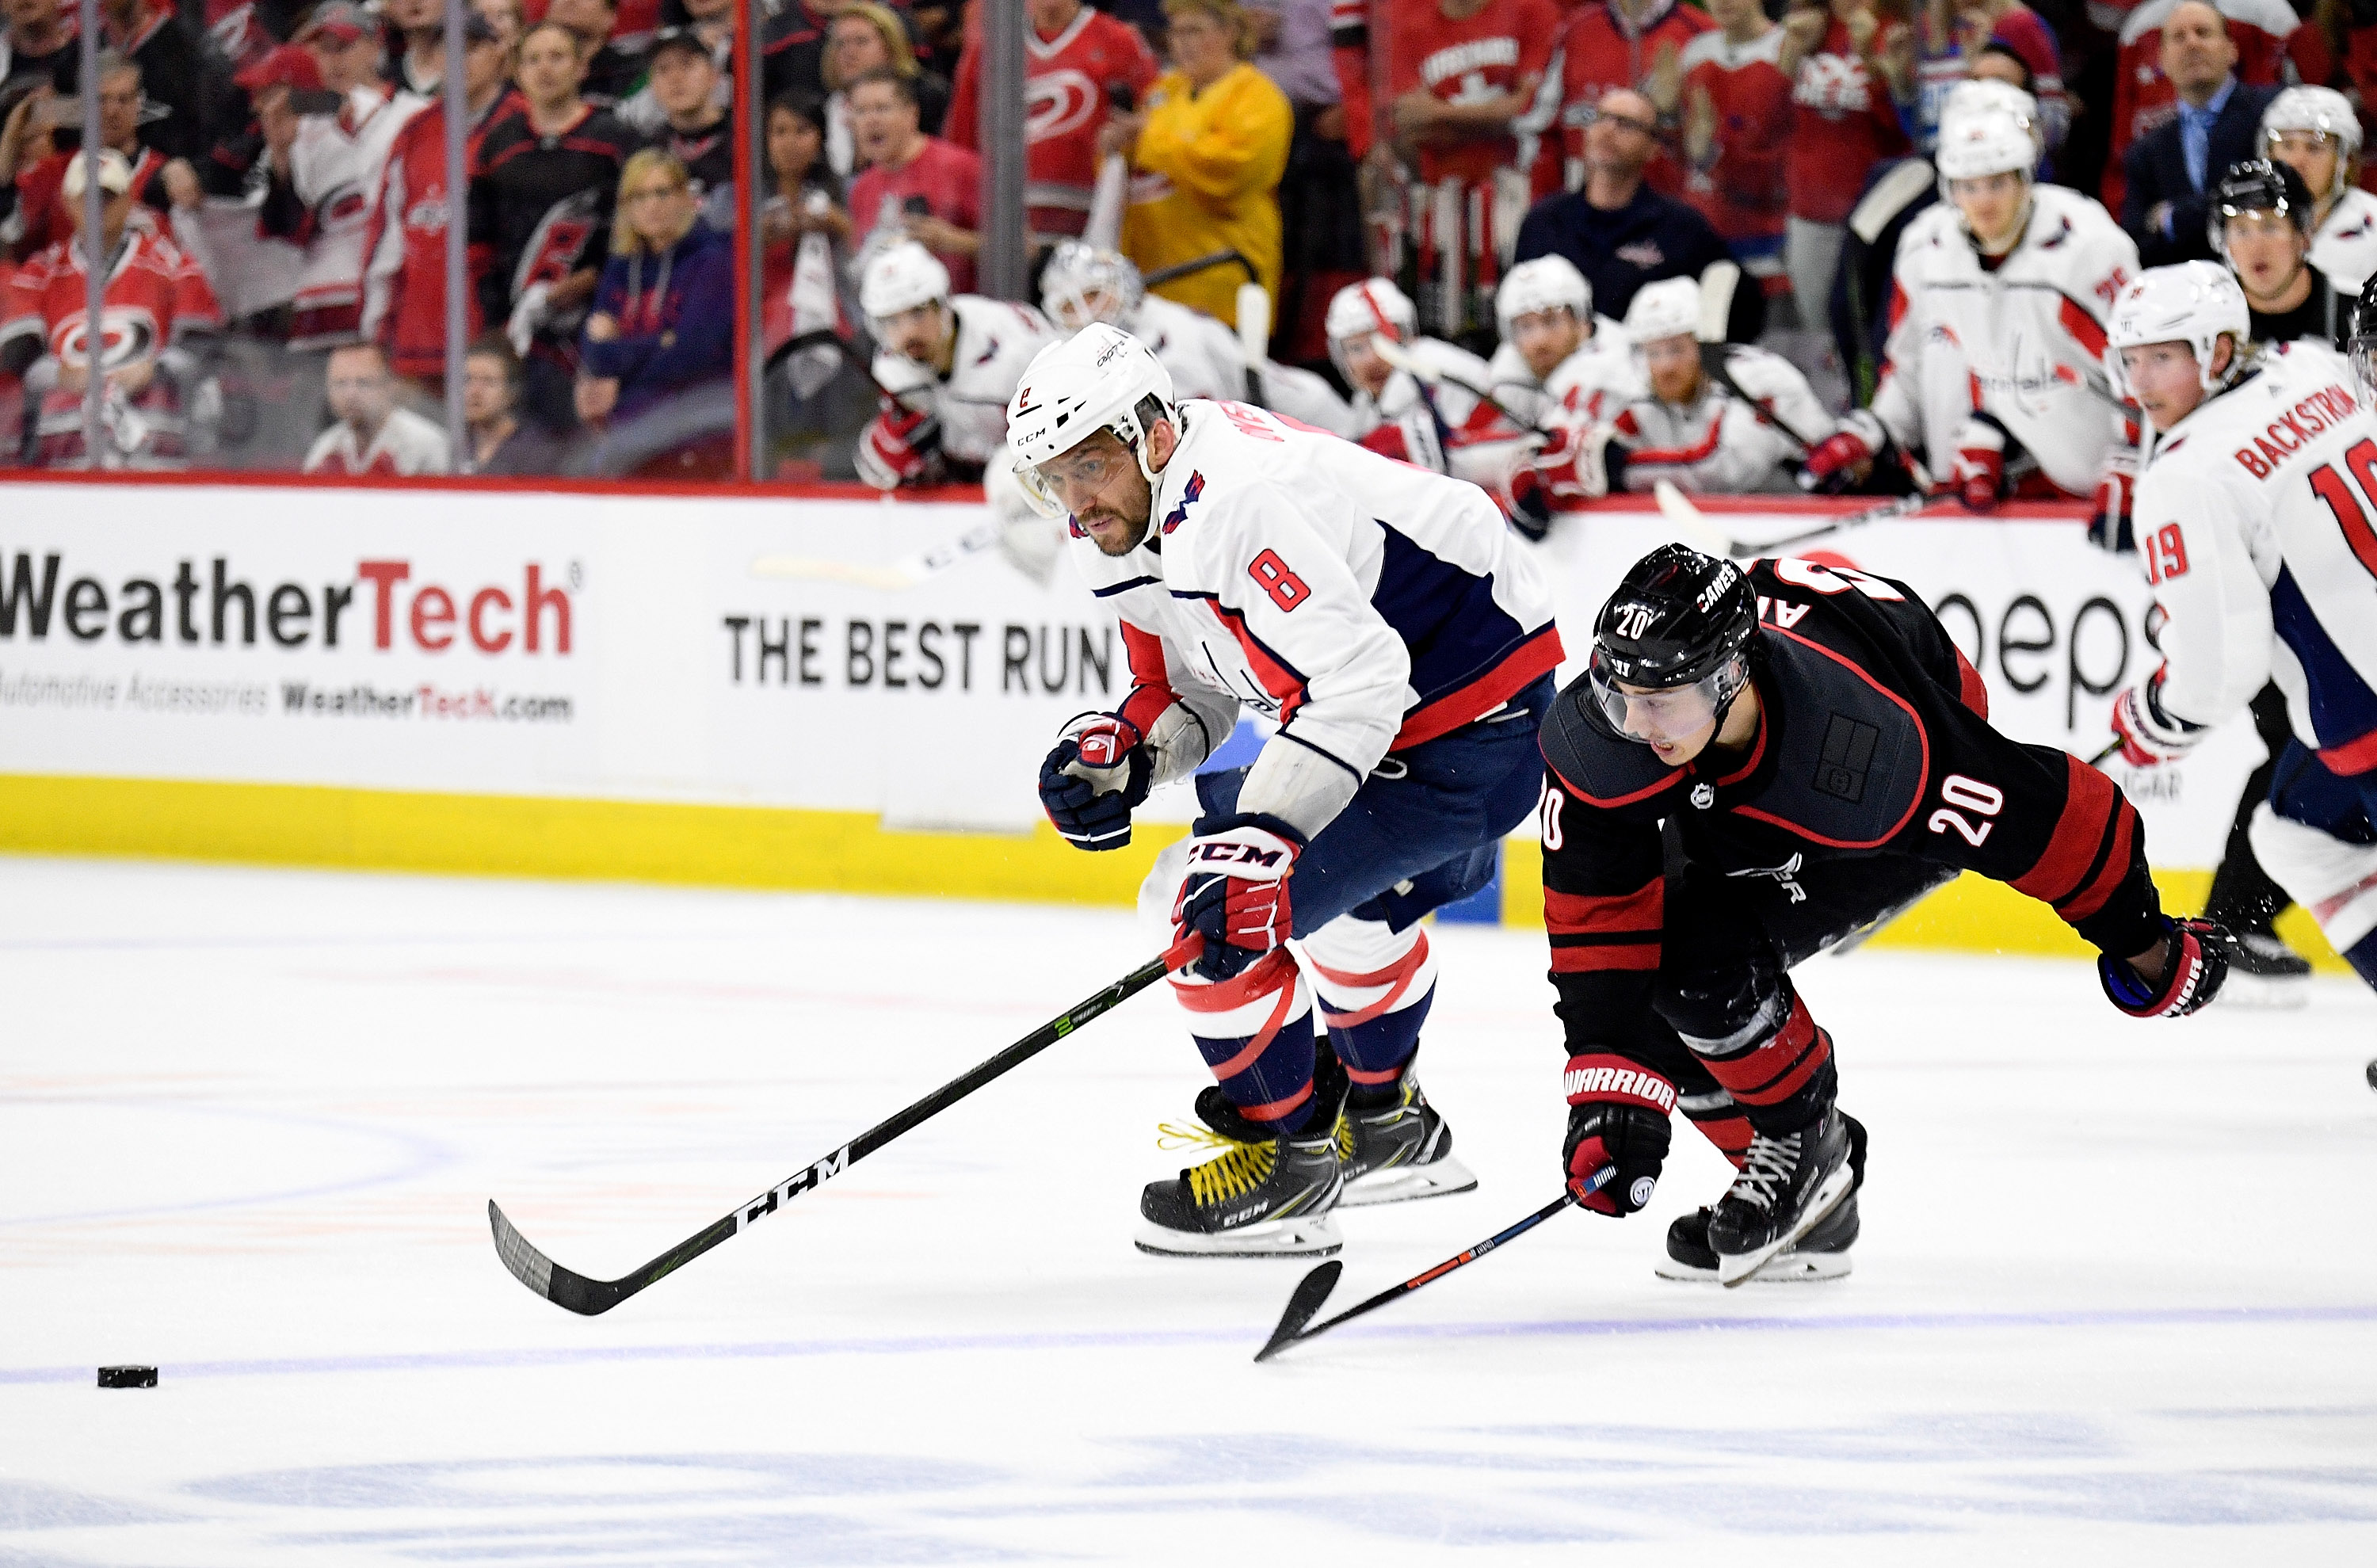 RALEIGH, NORTH CAROLINA - APRIL 18: Alex Ovechkin #8 of the Washington Capitals and Sebastian Aho #20 of the Carolina Hurricanes chase a loose puck in the third period in Game Four of the Eastern Conference First Round during the 2019 NHL Stanley Cup Play